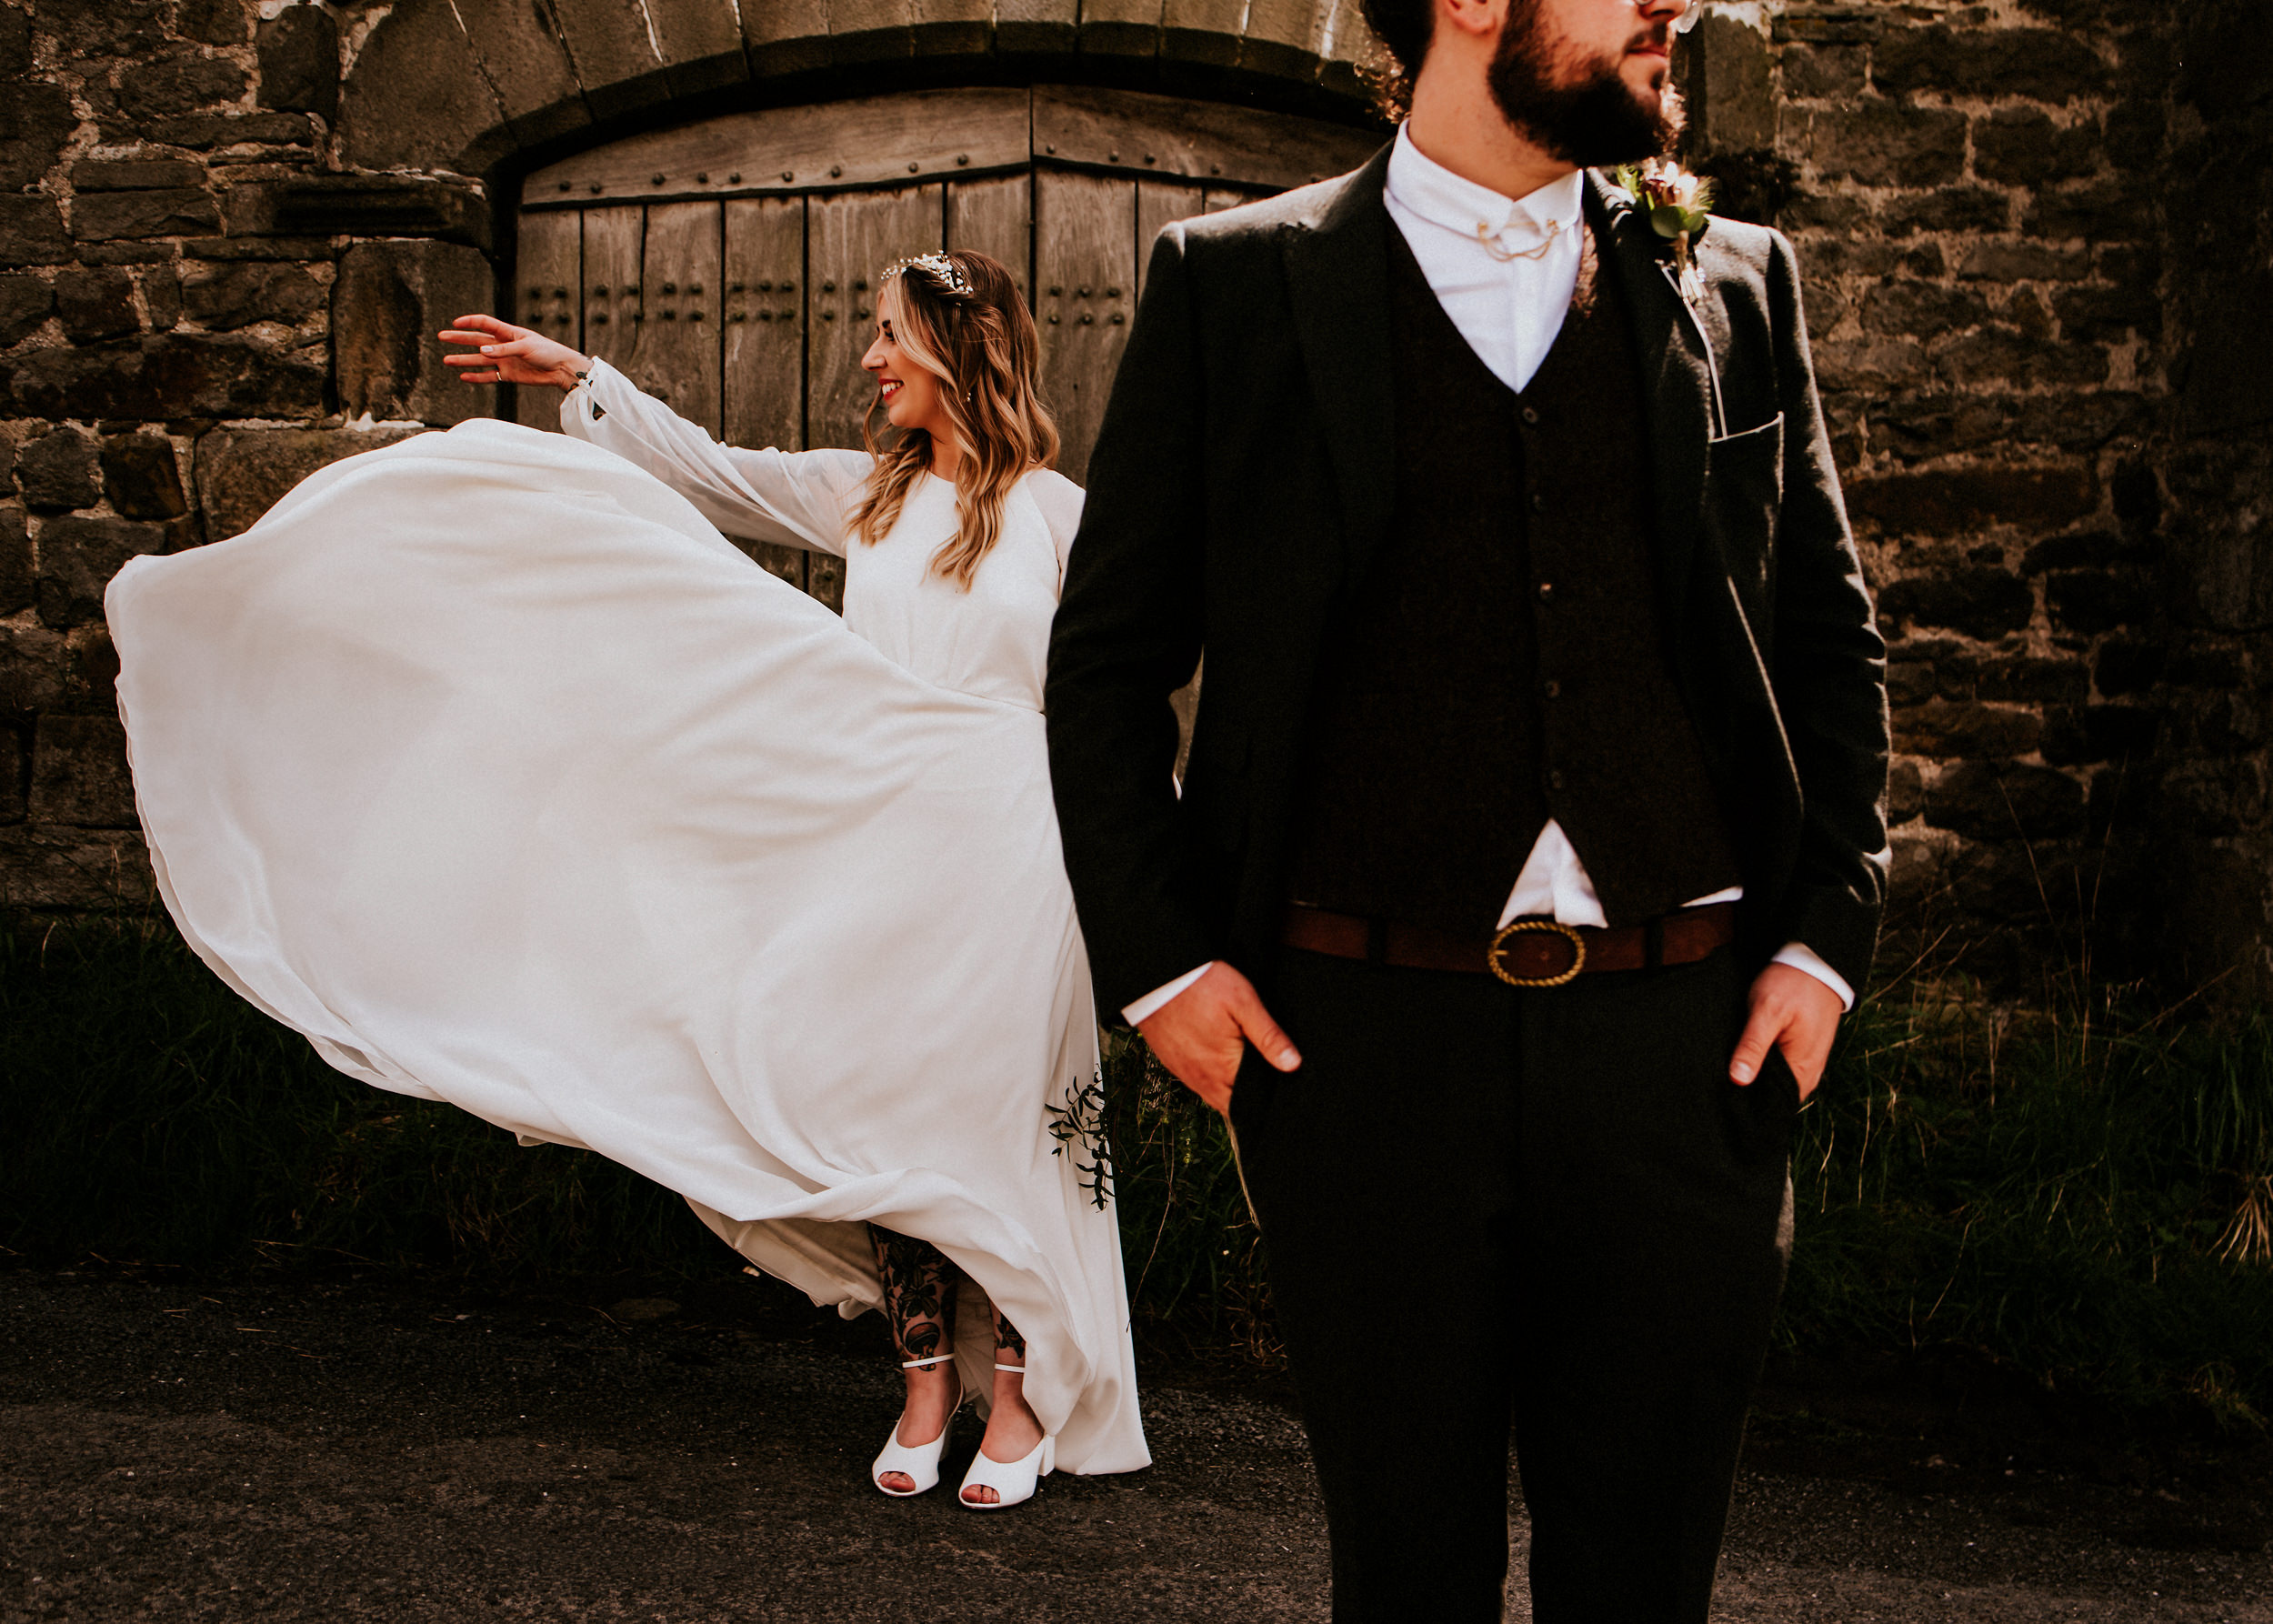 yorkshire-dales-craven-arms-appletreewick-wedding-photography-by-shutter-go-click-51.jpg